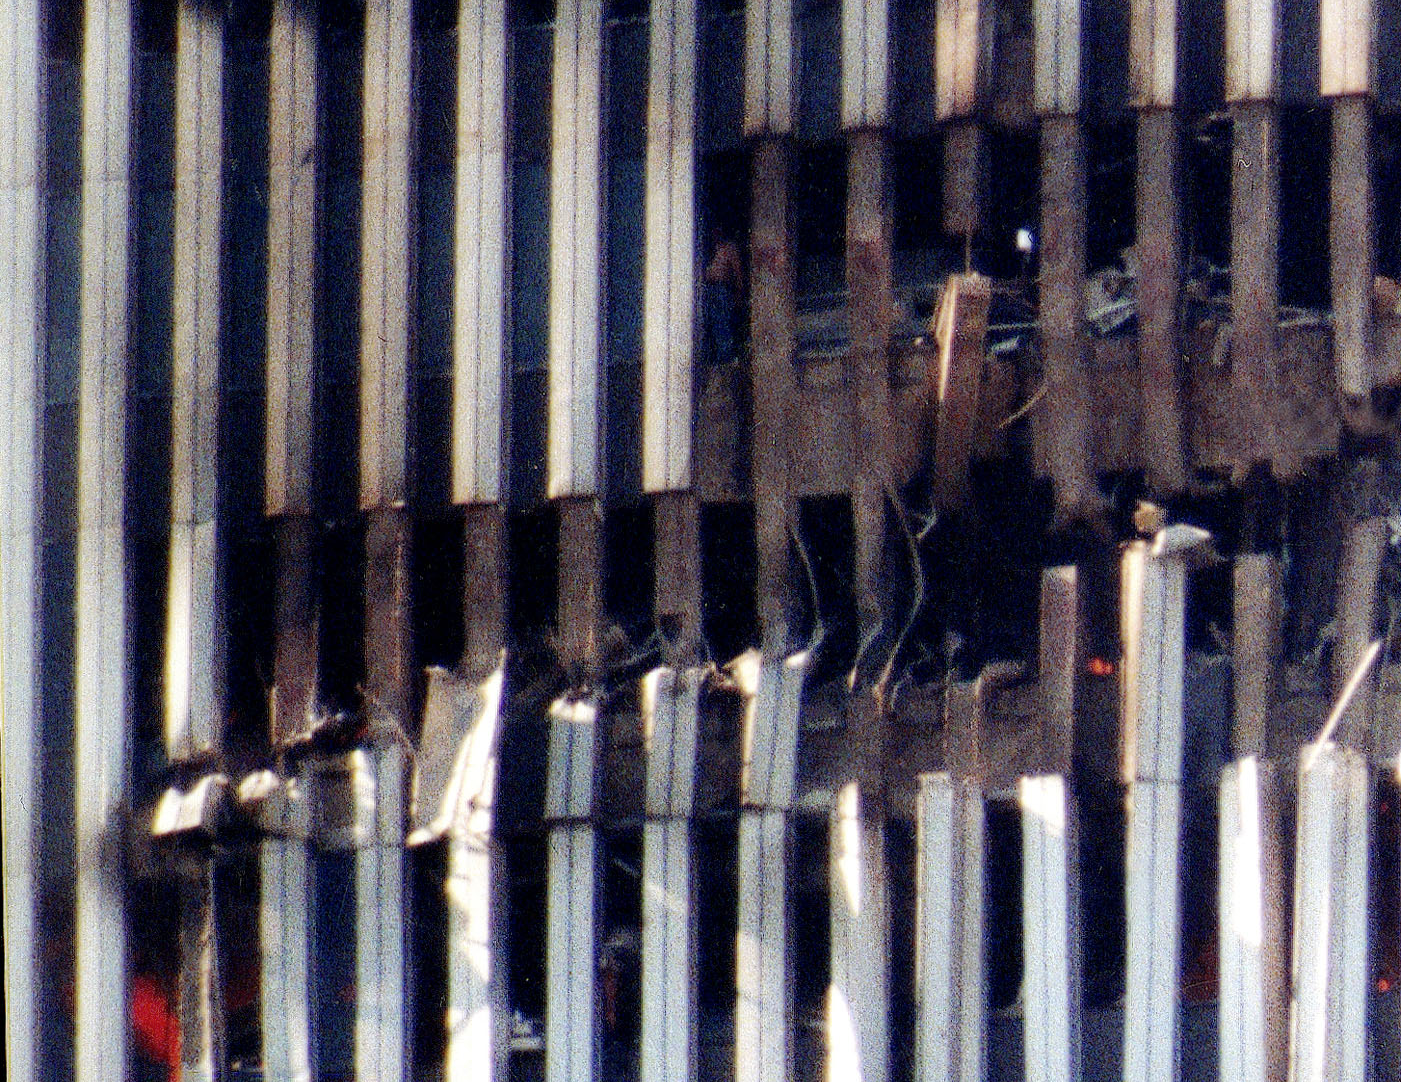 9/11 North Tower Wing Impact